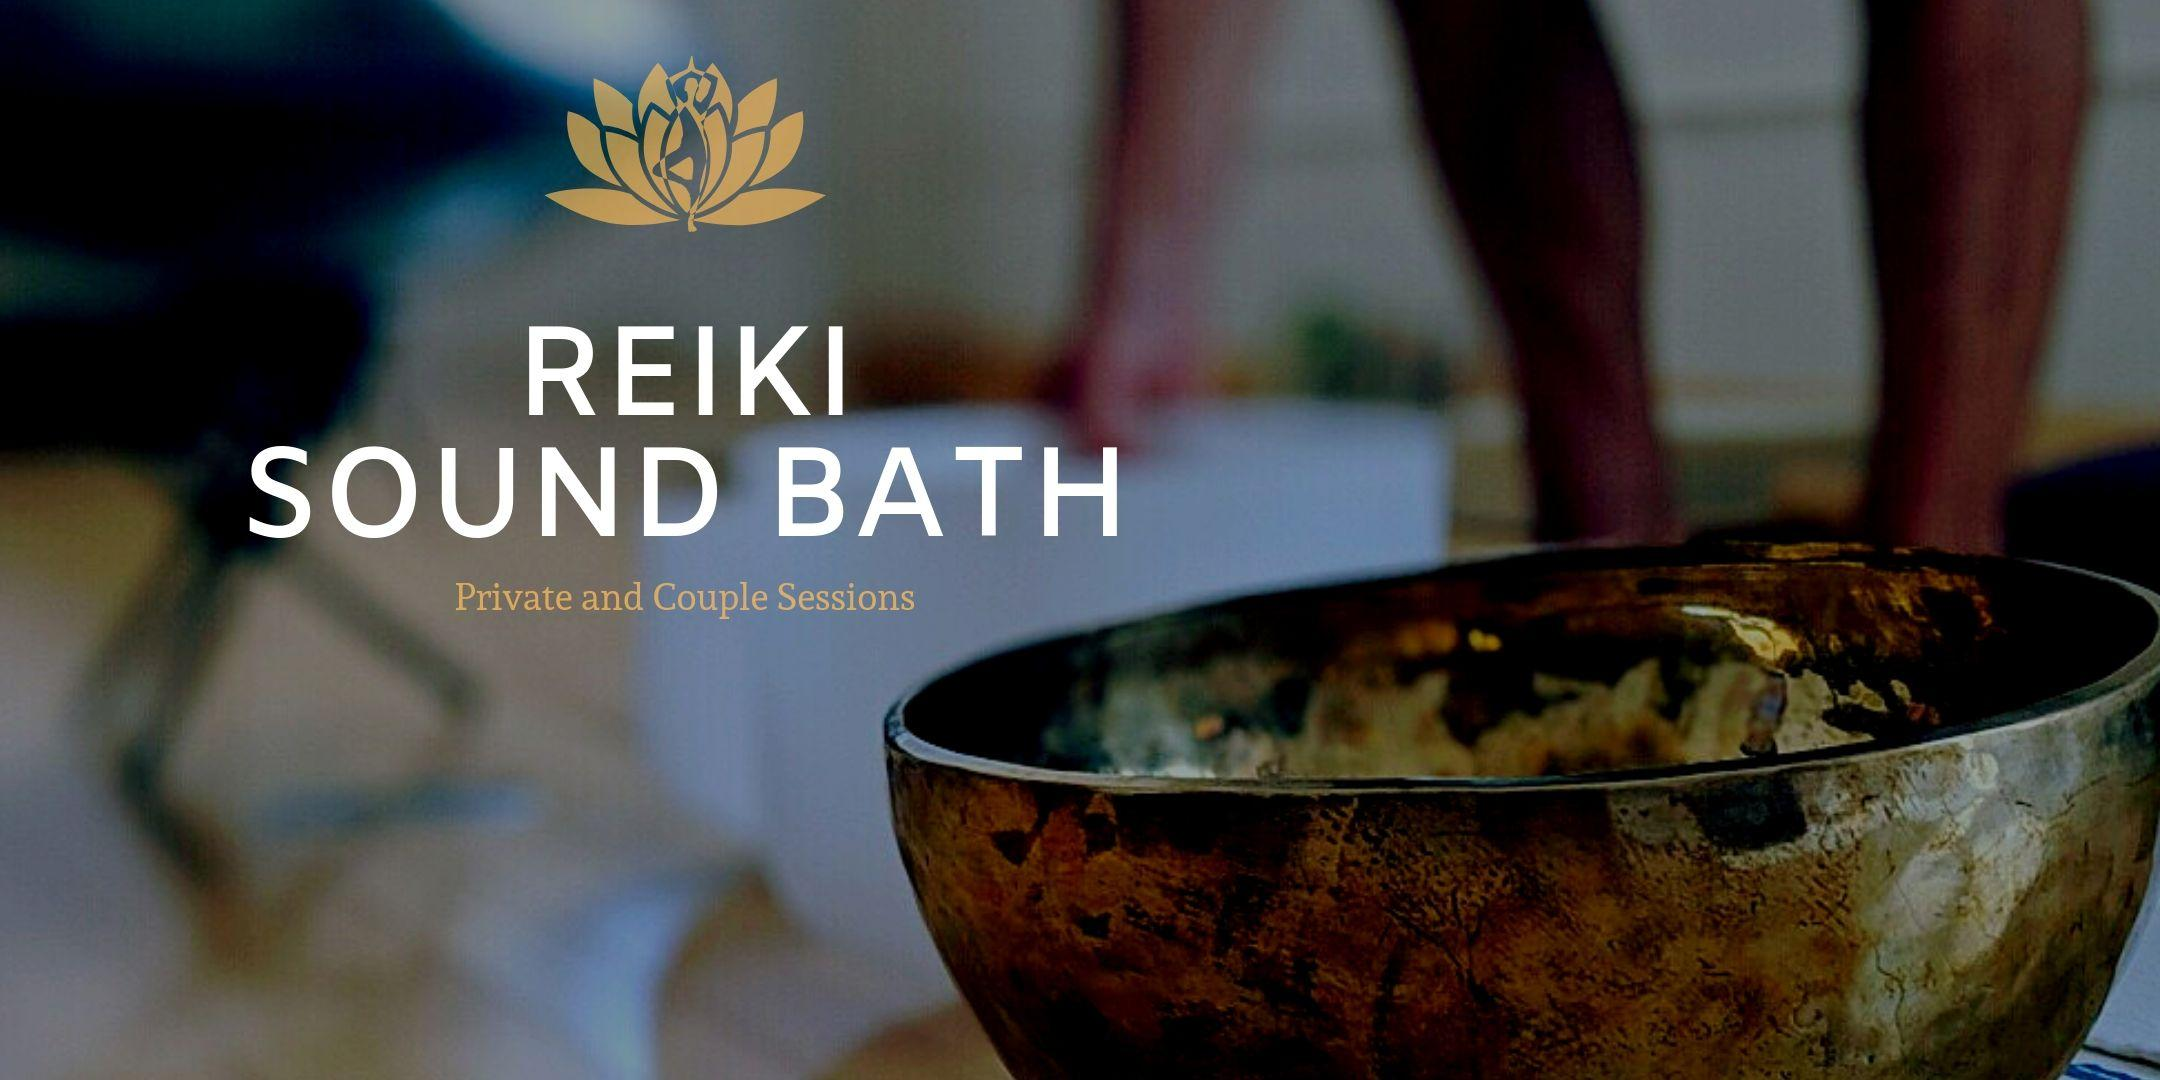 Reiki Sound Bath